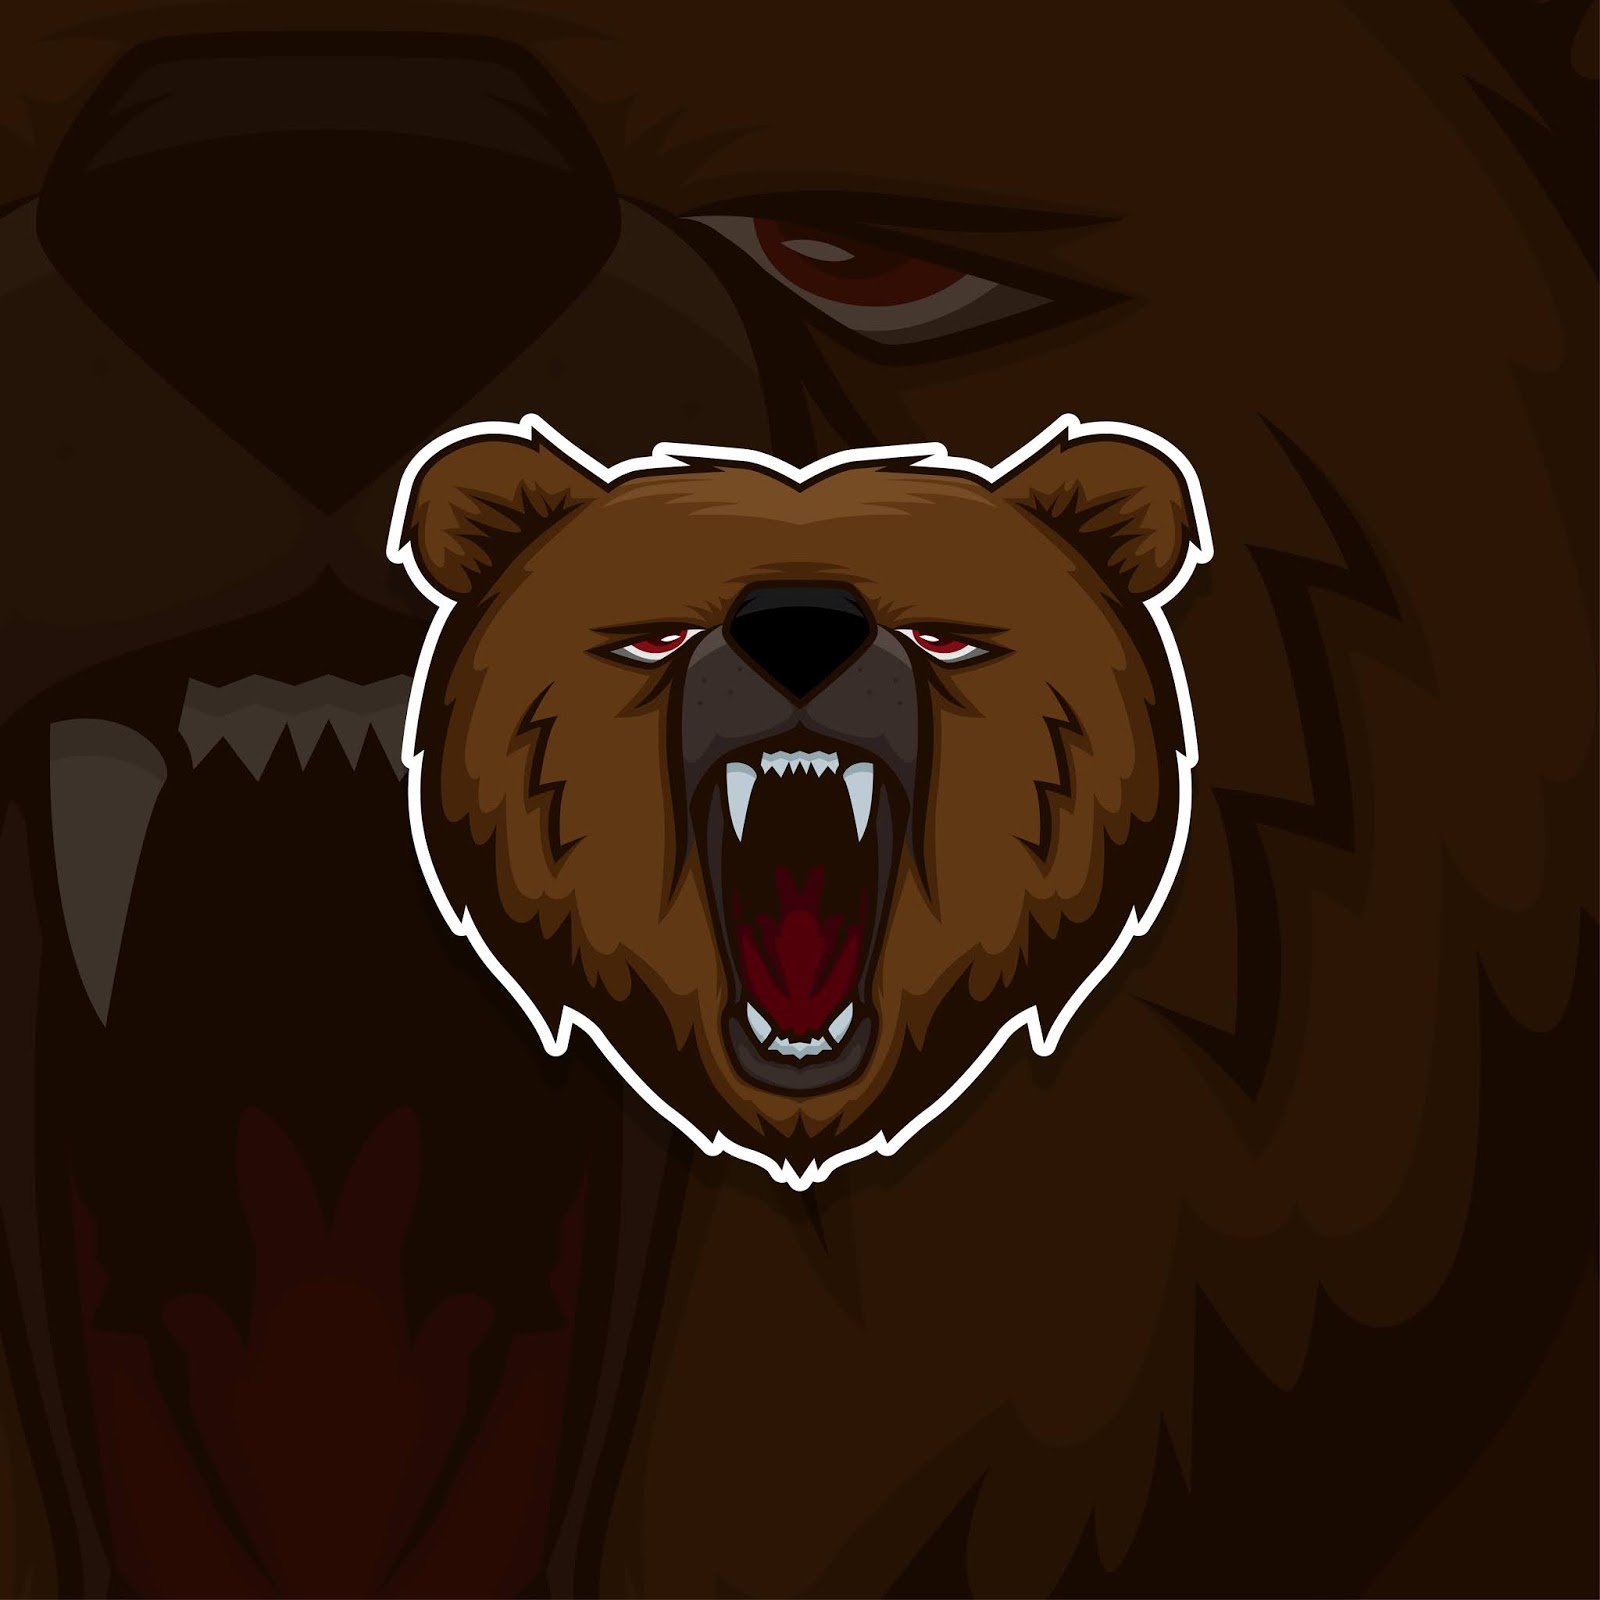 Esport Gamer Logo Bear Free Download Vector CDR, AI, EPS and PNG Formats